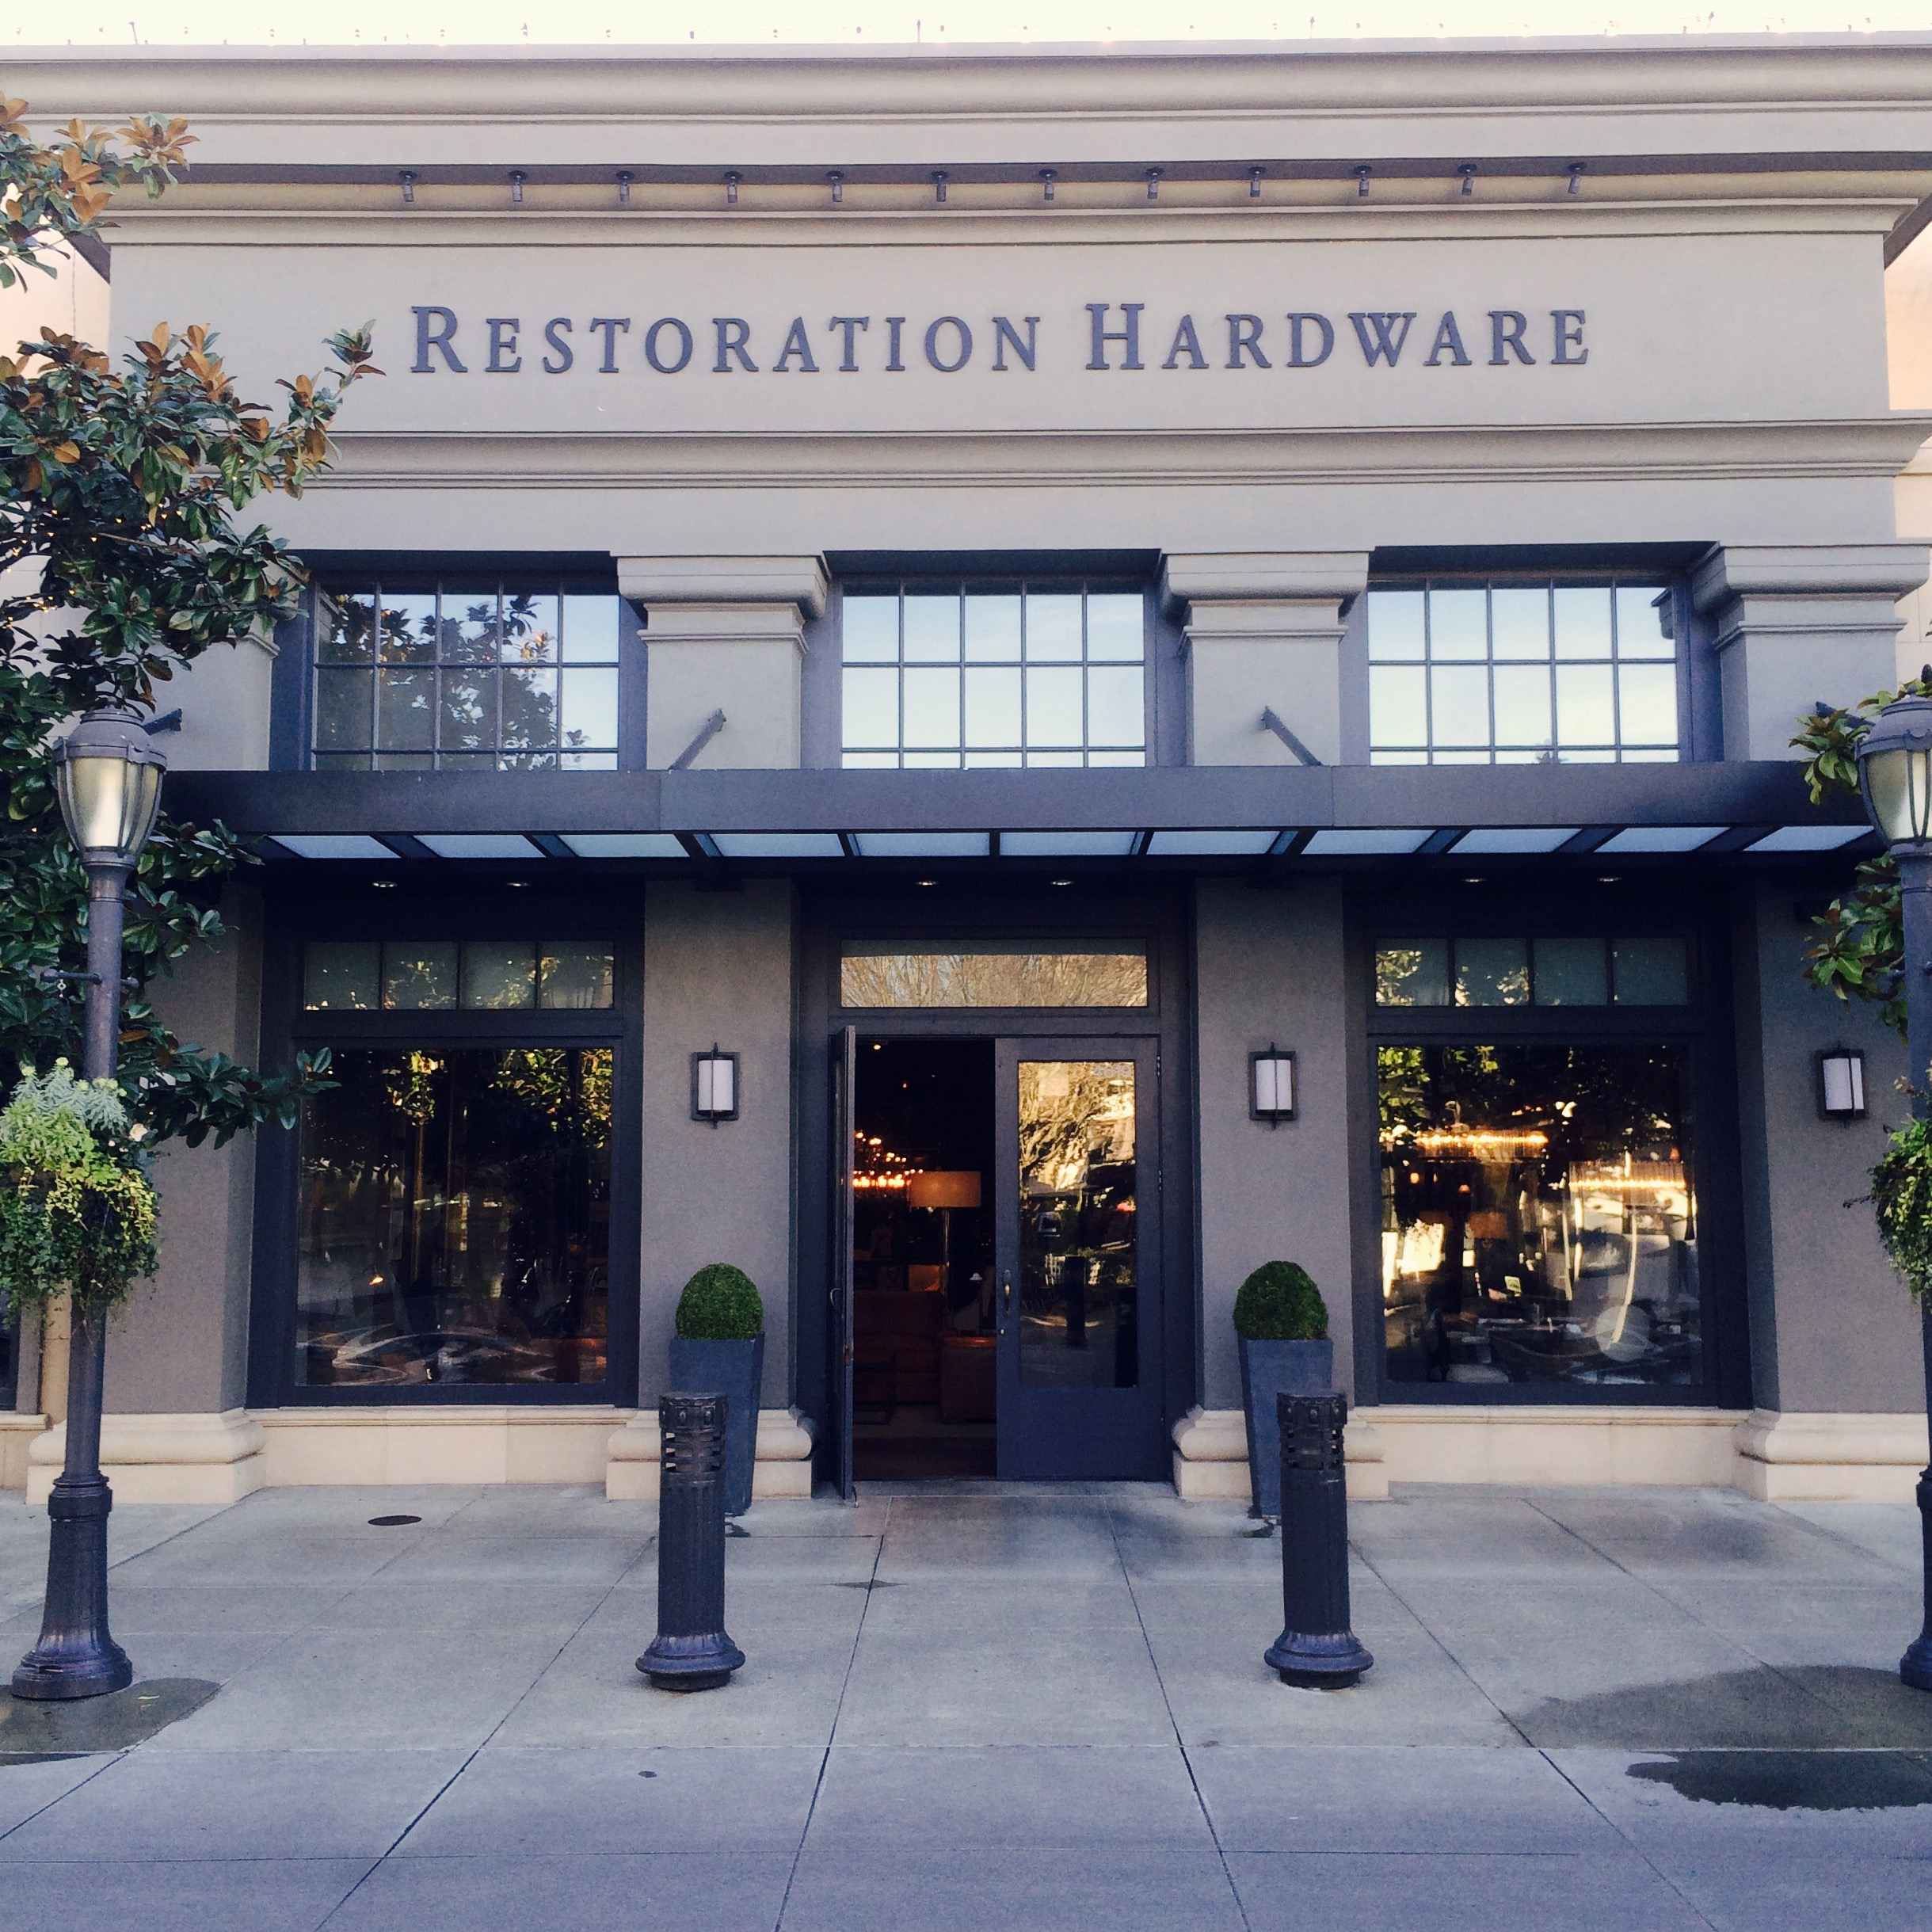 Cabinet hardware stores in seattle for Restoration hardware online shopping